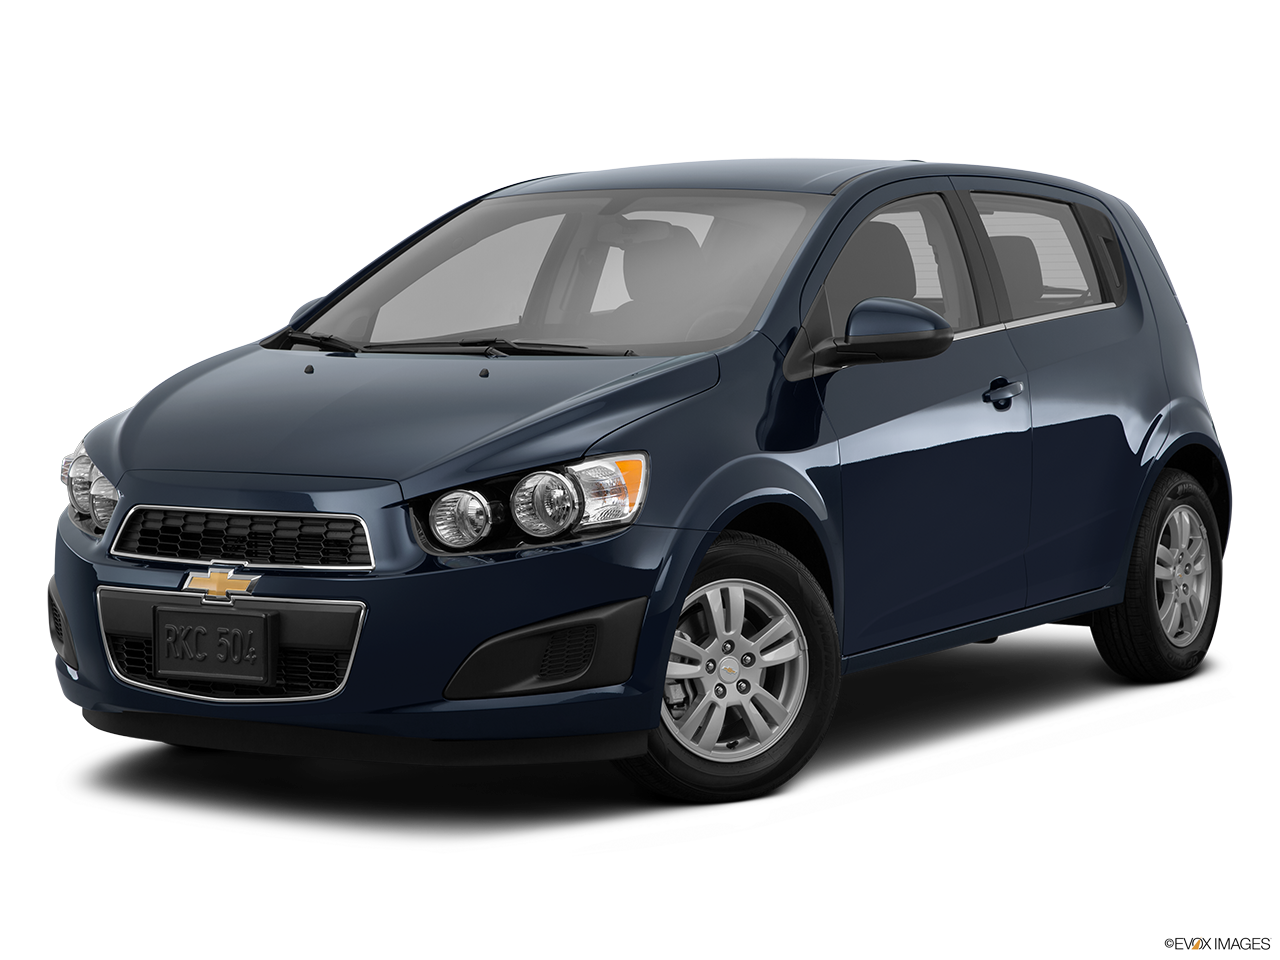 2015 Chevrolet Sonic Dealer serving Minneapolis | Rosedale Chevrolet